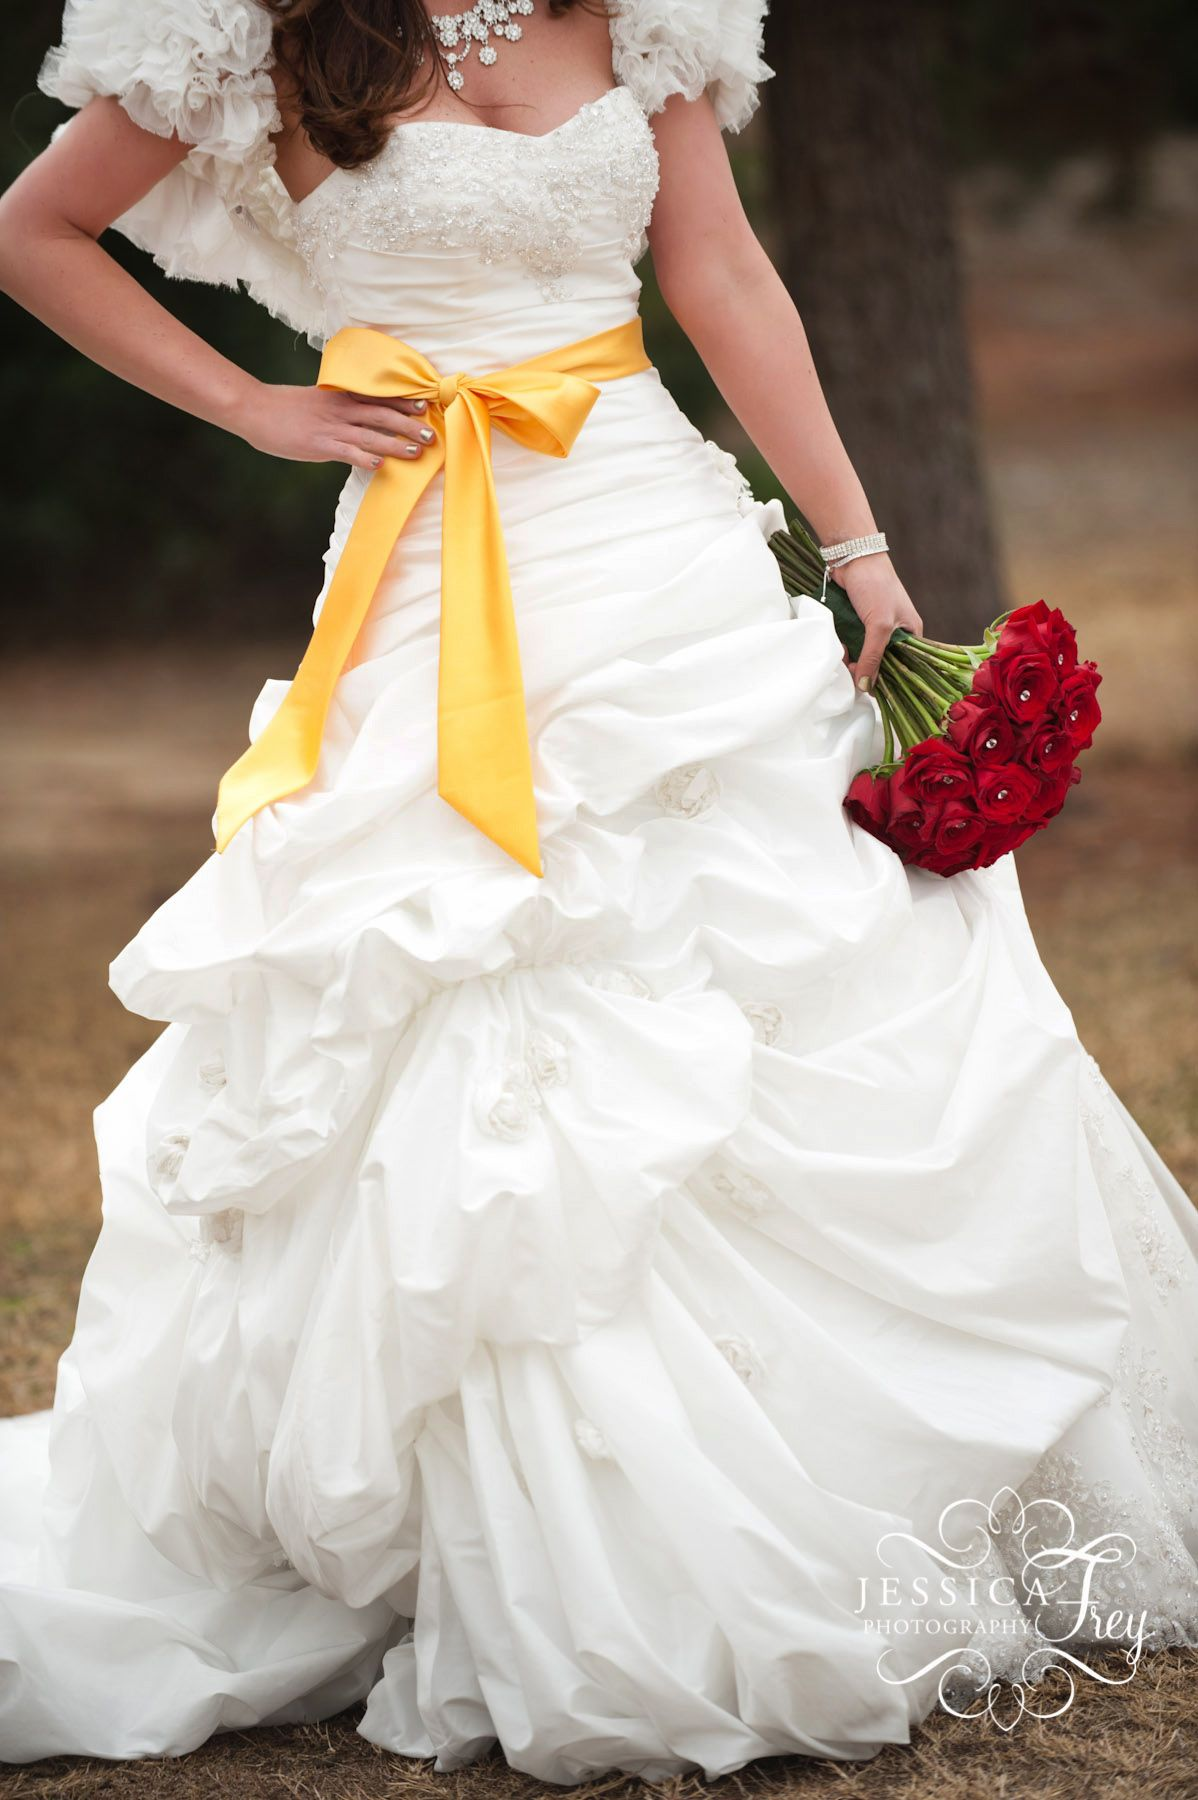 Beauty And The Beast Bridesmaid Dresses: Beauty And The Beast Belle Wedding Dress